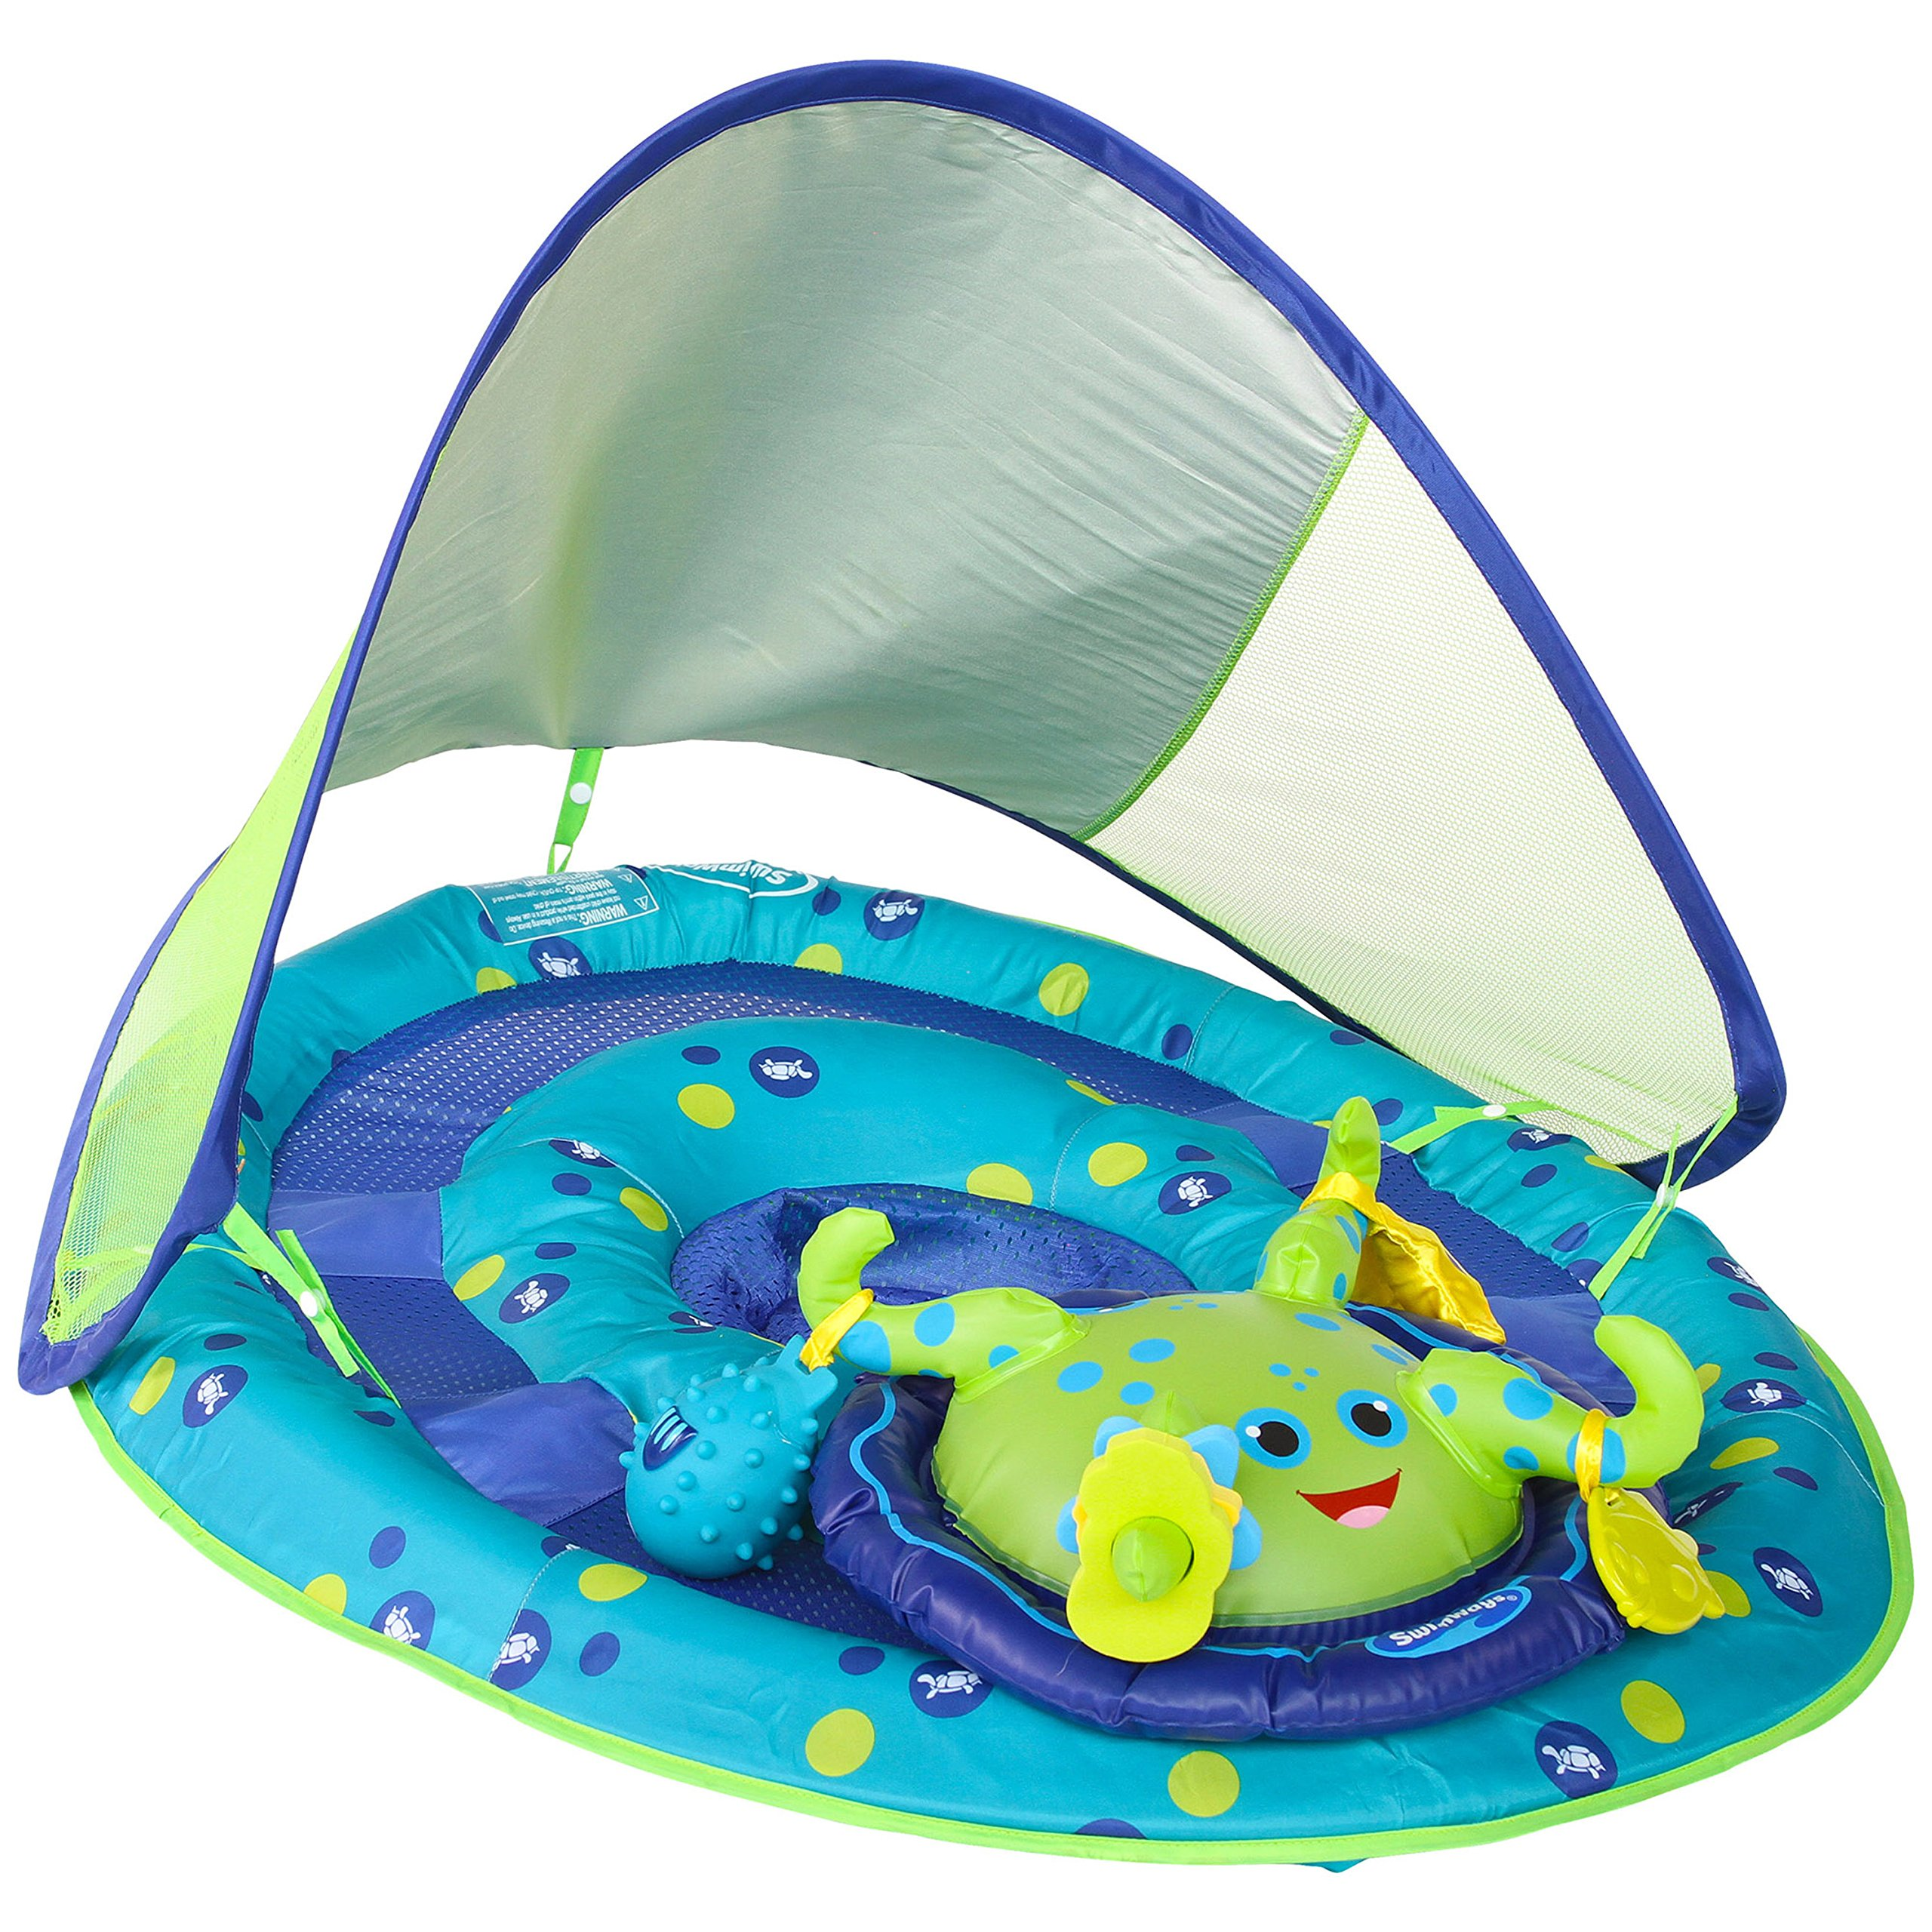 SwimWays Baby Spring Float Activity Center with Canopy - Inflatable Float for Children with Interactive Toys and UPF Sun Protection - Blue/Green Octopus by SwimWays